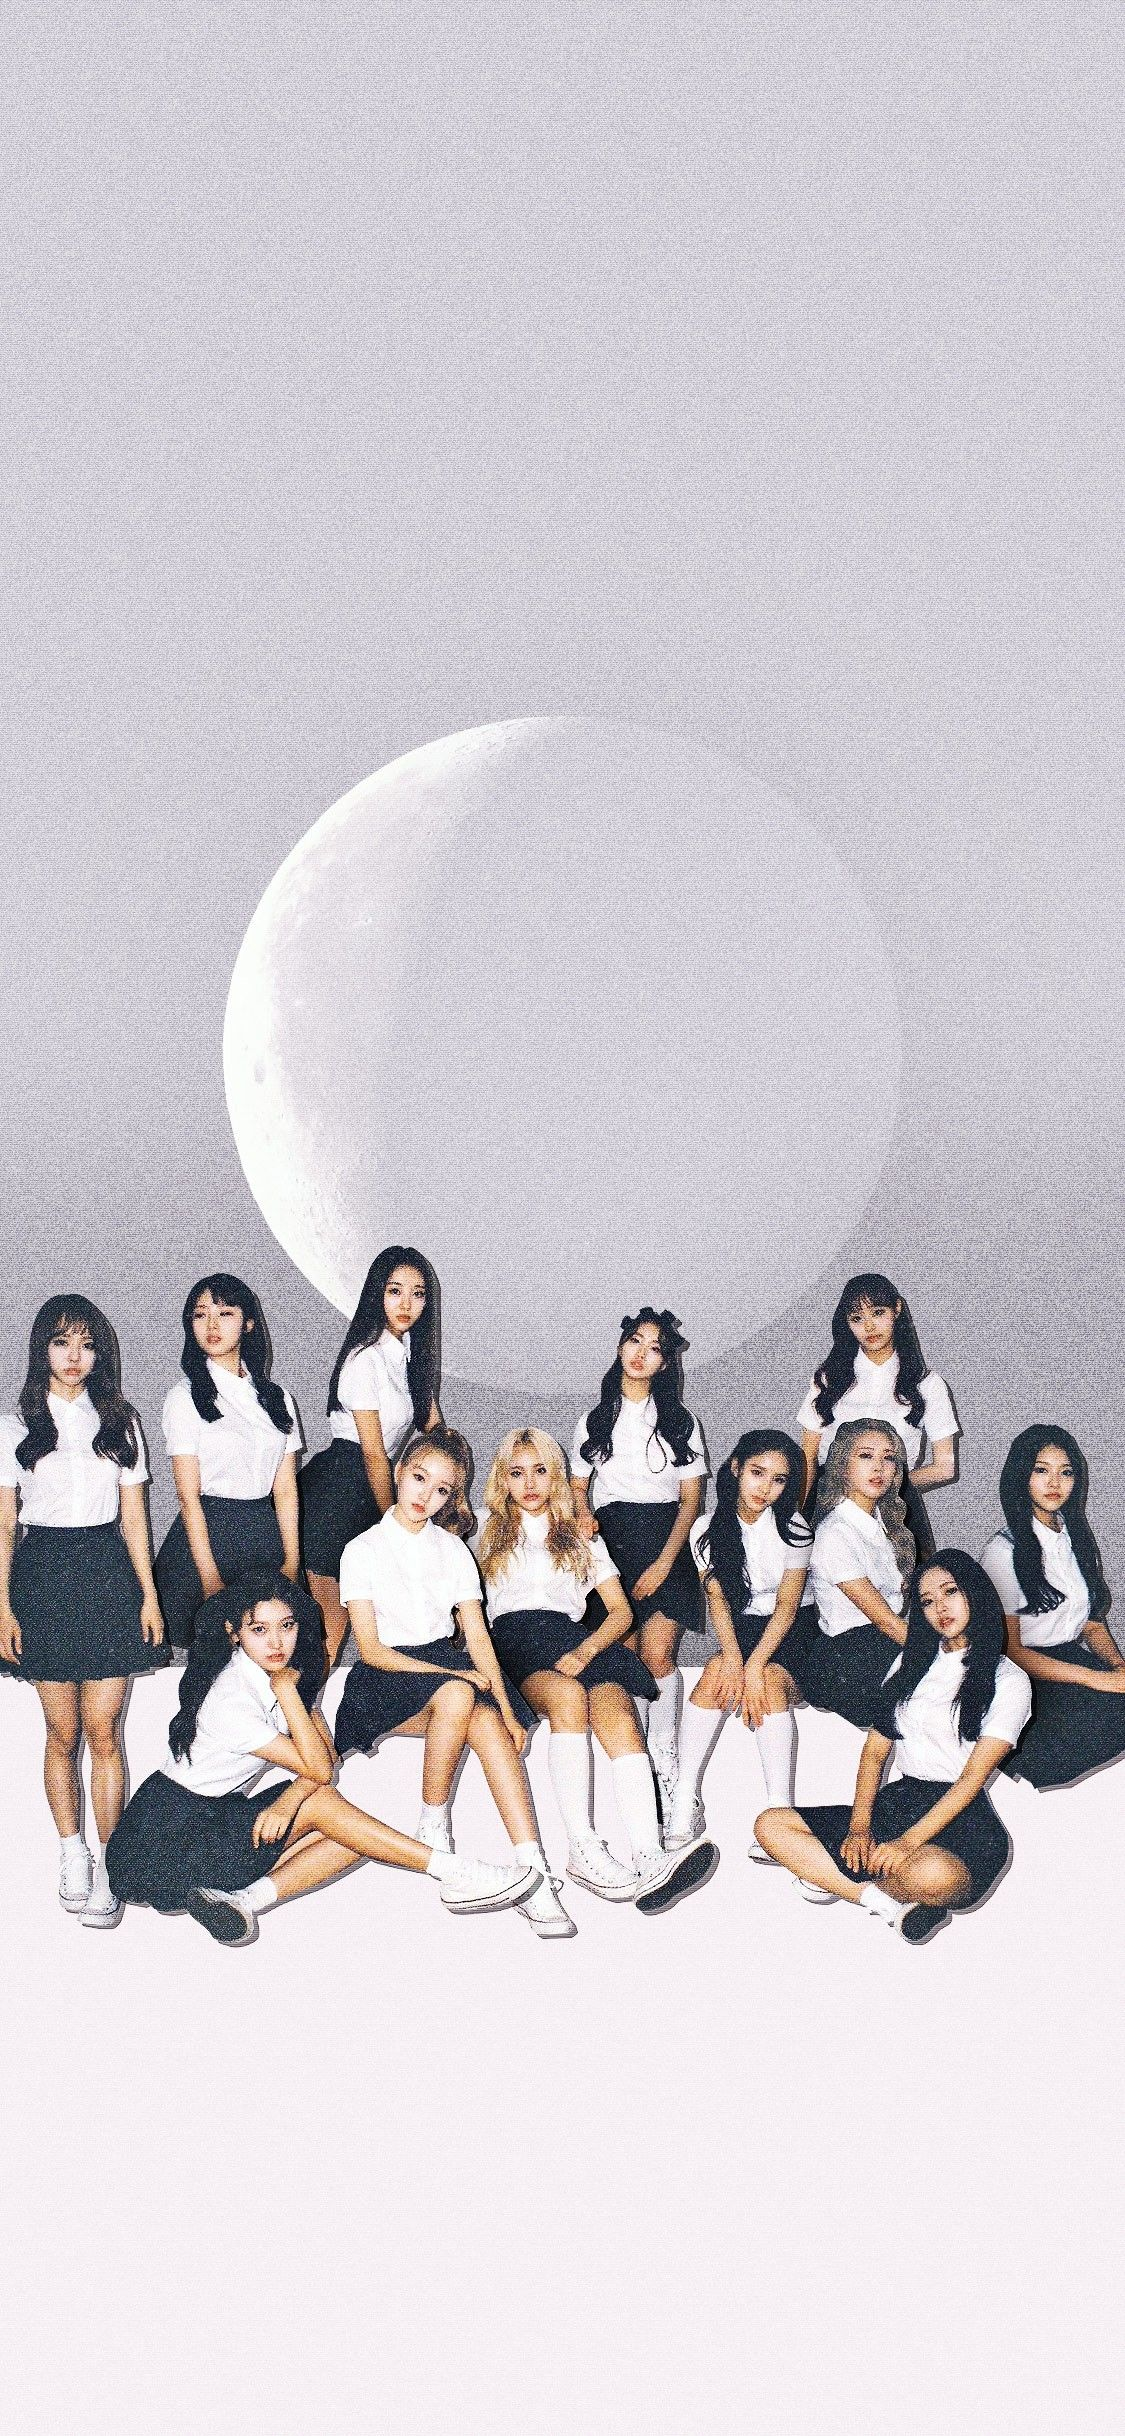 Loona Kpop Wallpaper Bff Photoshoot Poses Cute Wallpapers